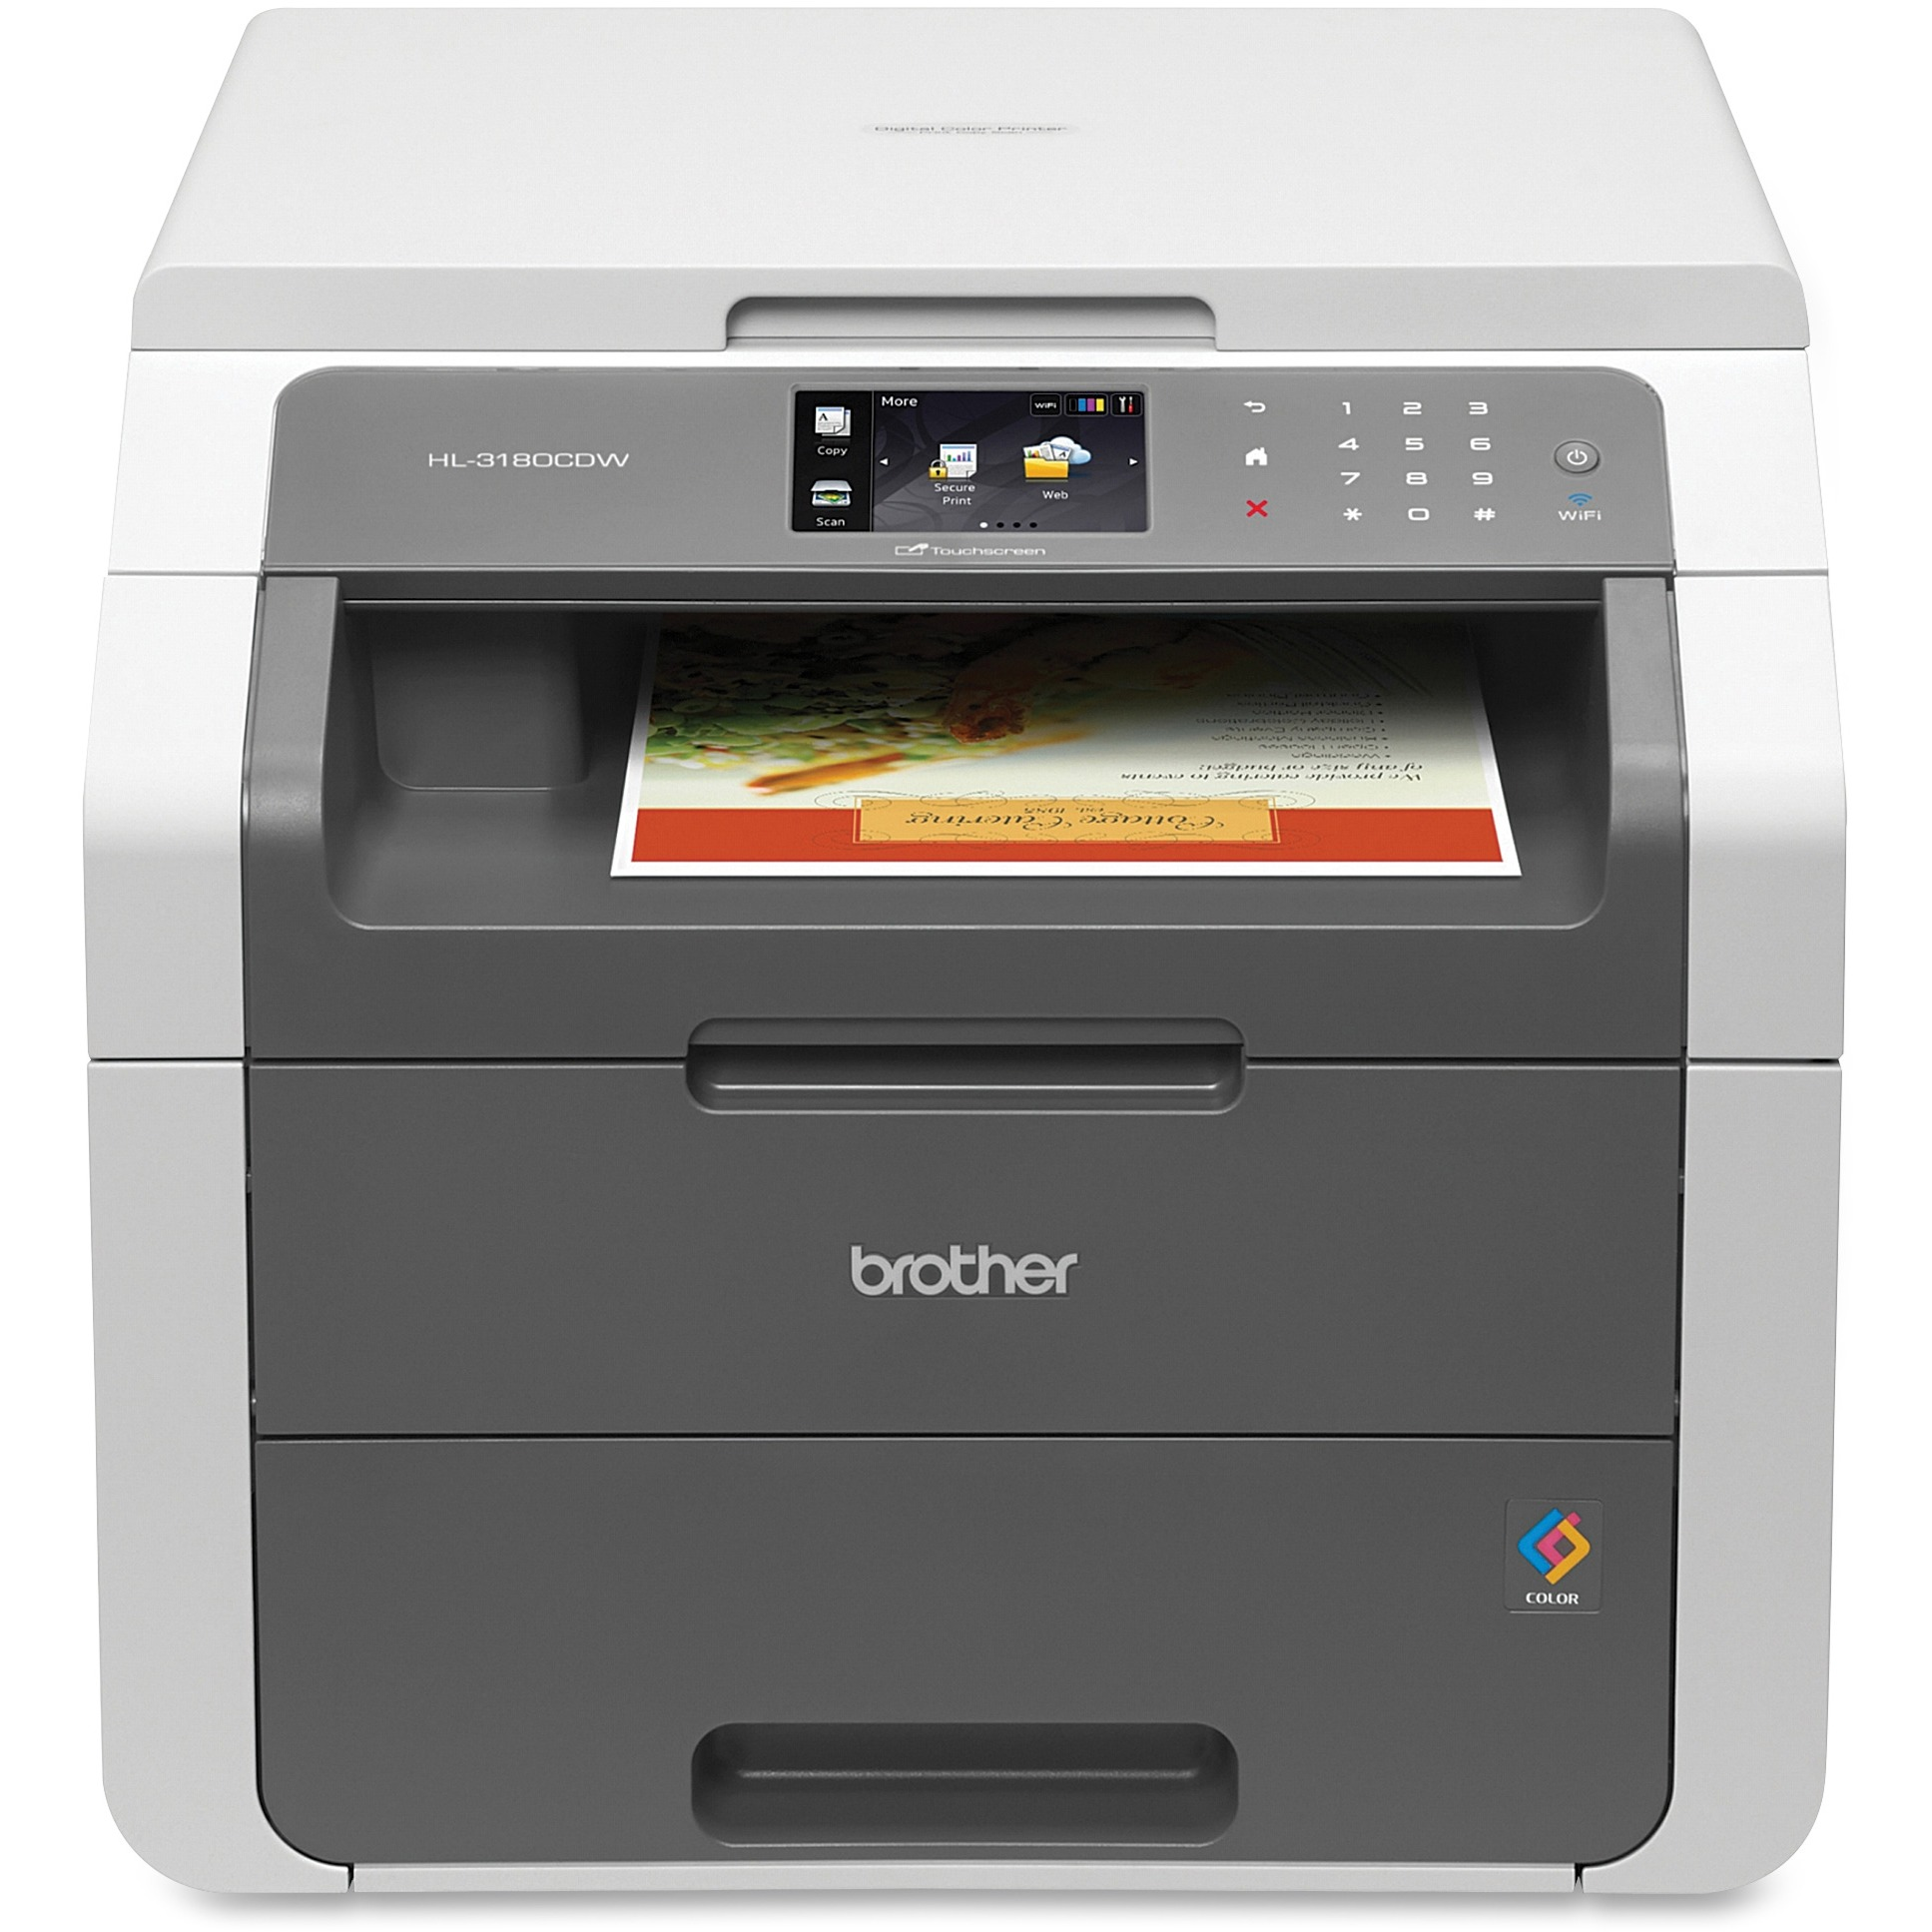 Brother HL-3180CDW Wireless Color All-In-One Laser Printer White/Gray